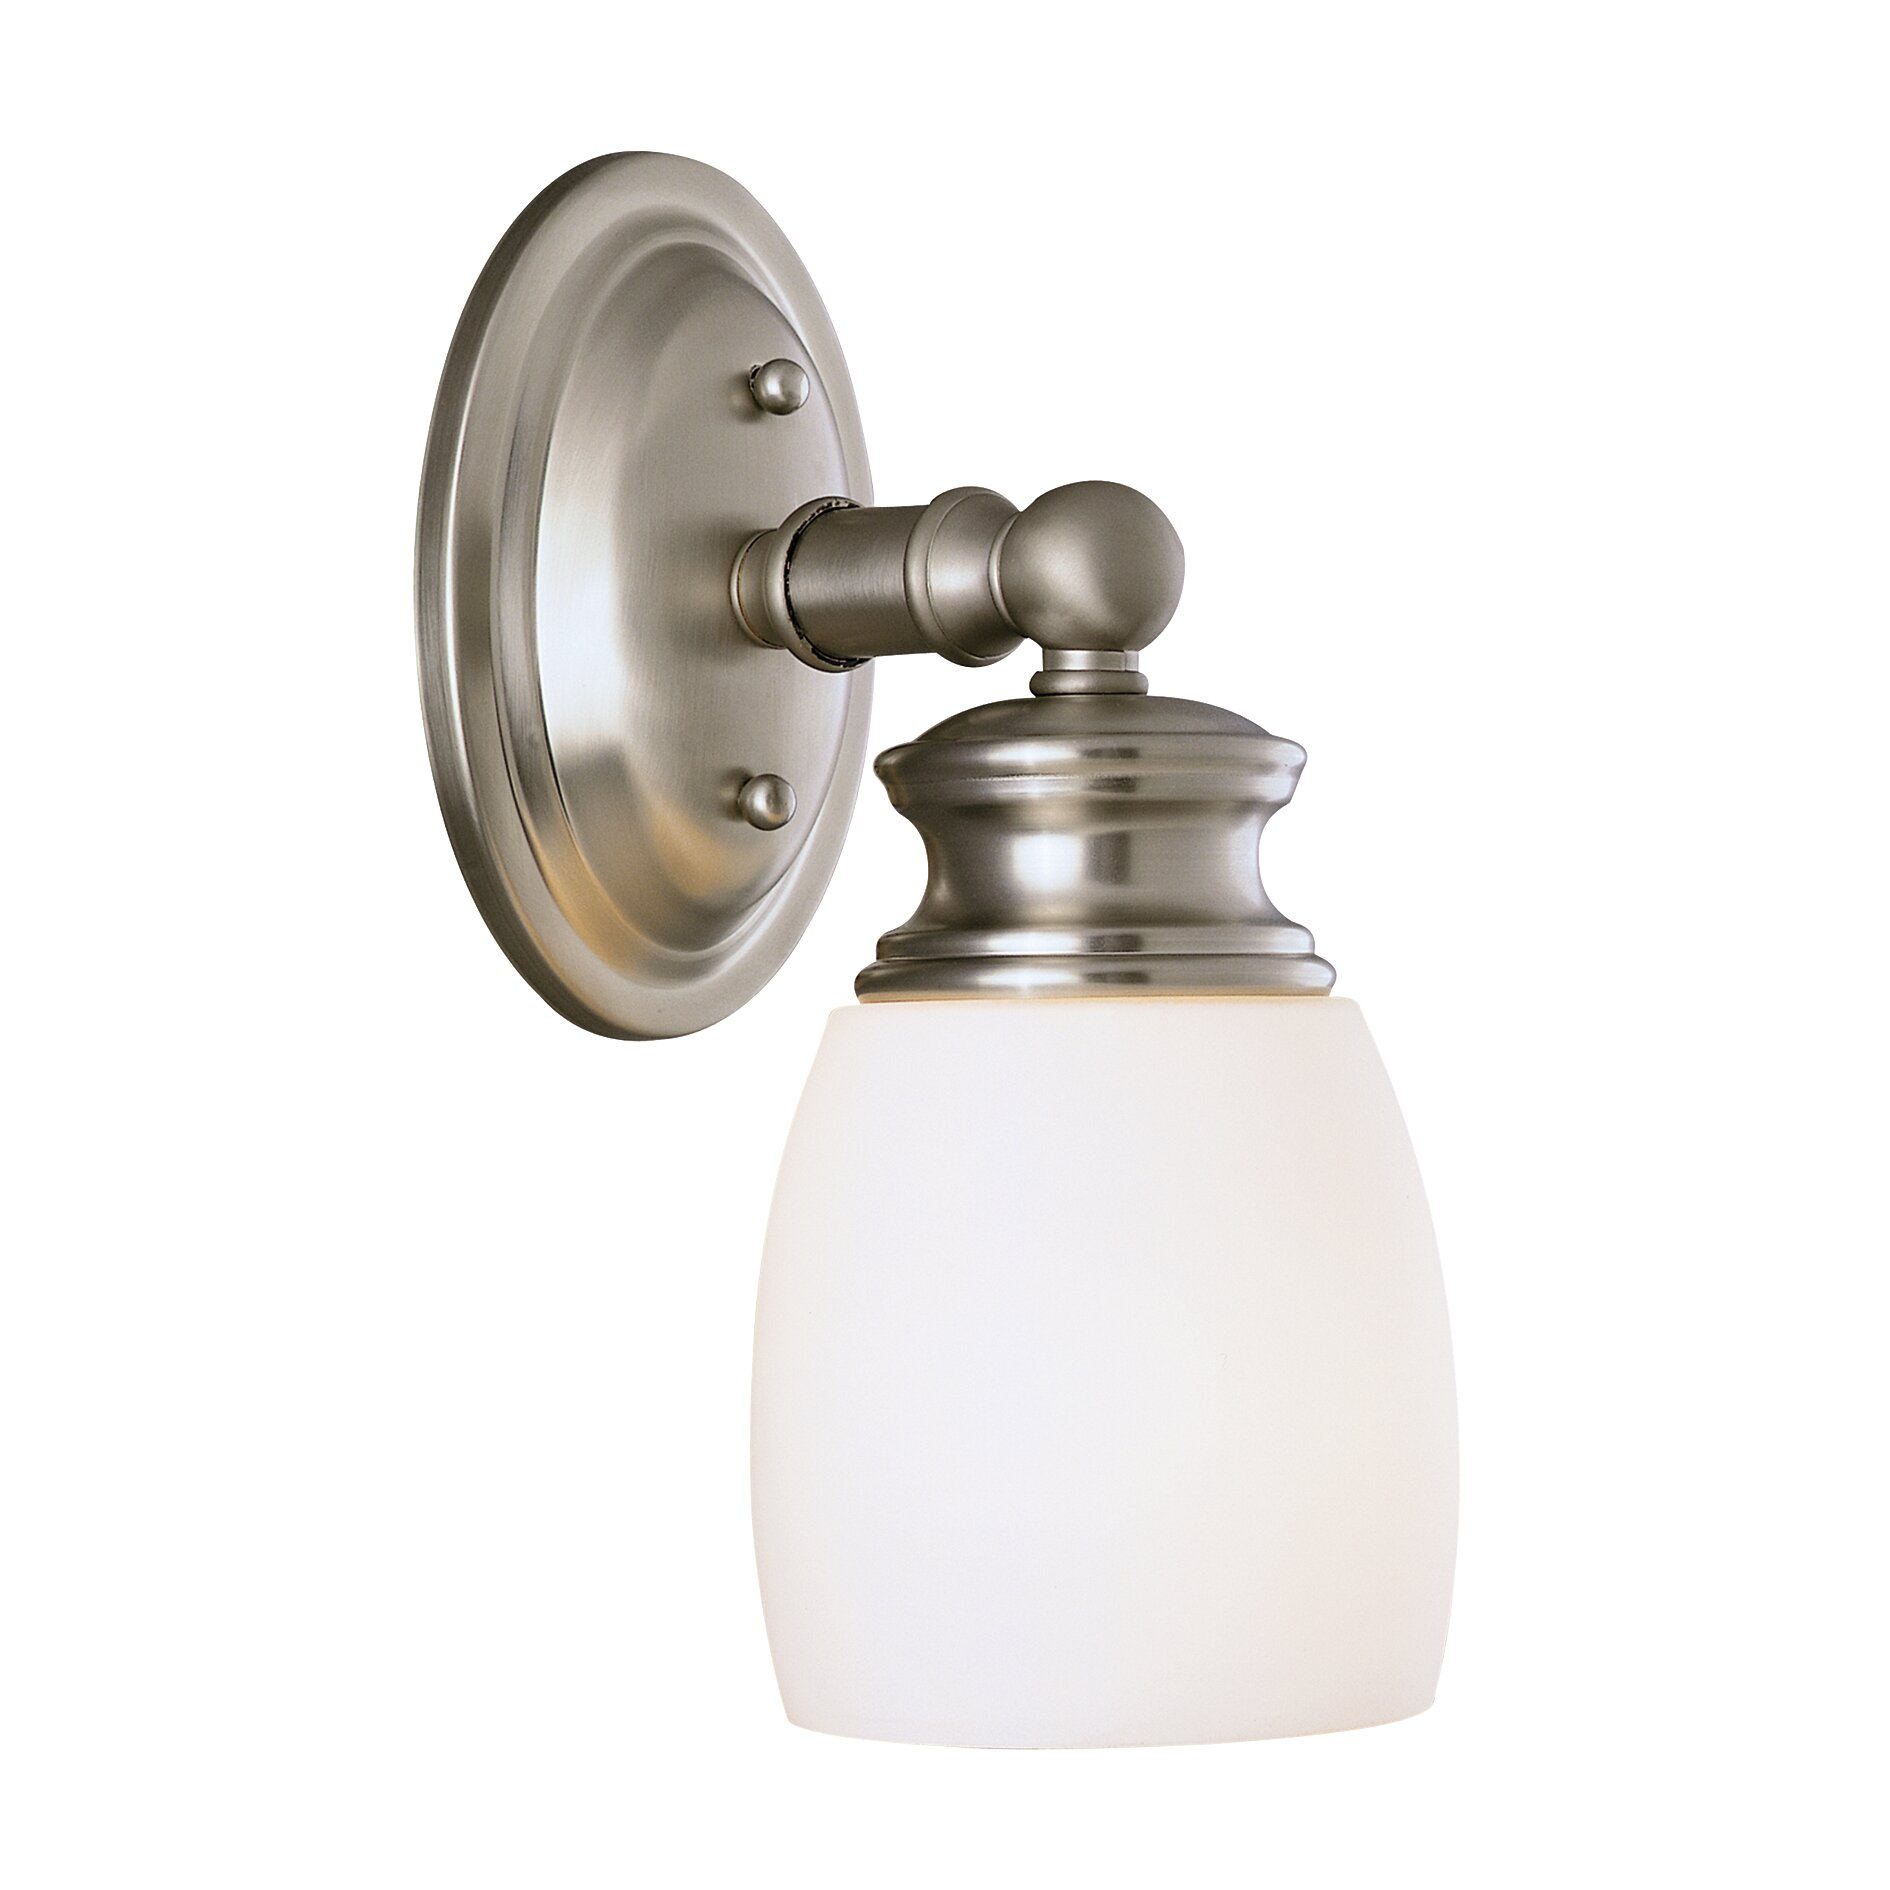 Savoy House 1 Light Wall Sconce Reviews Wayfair